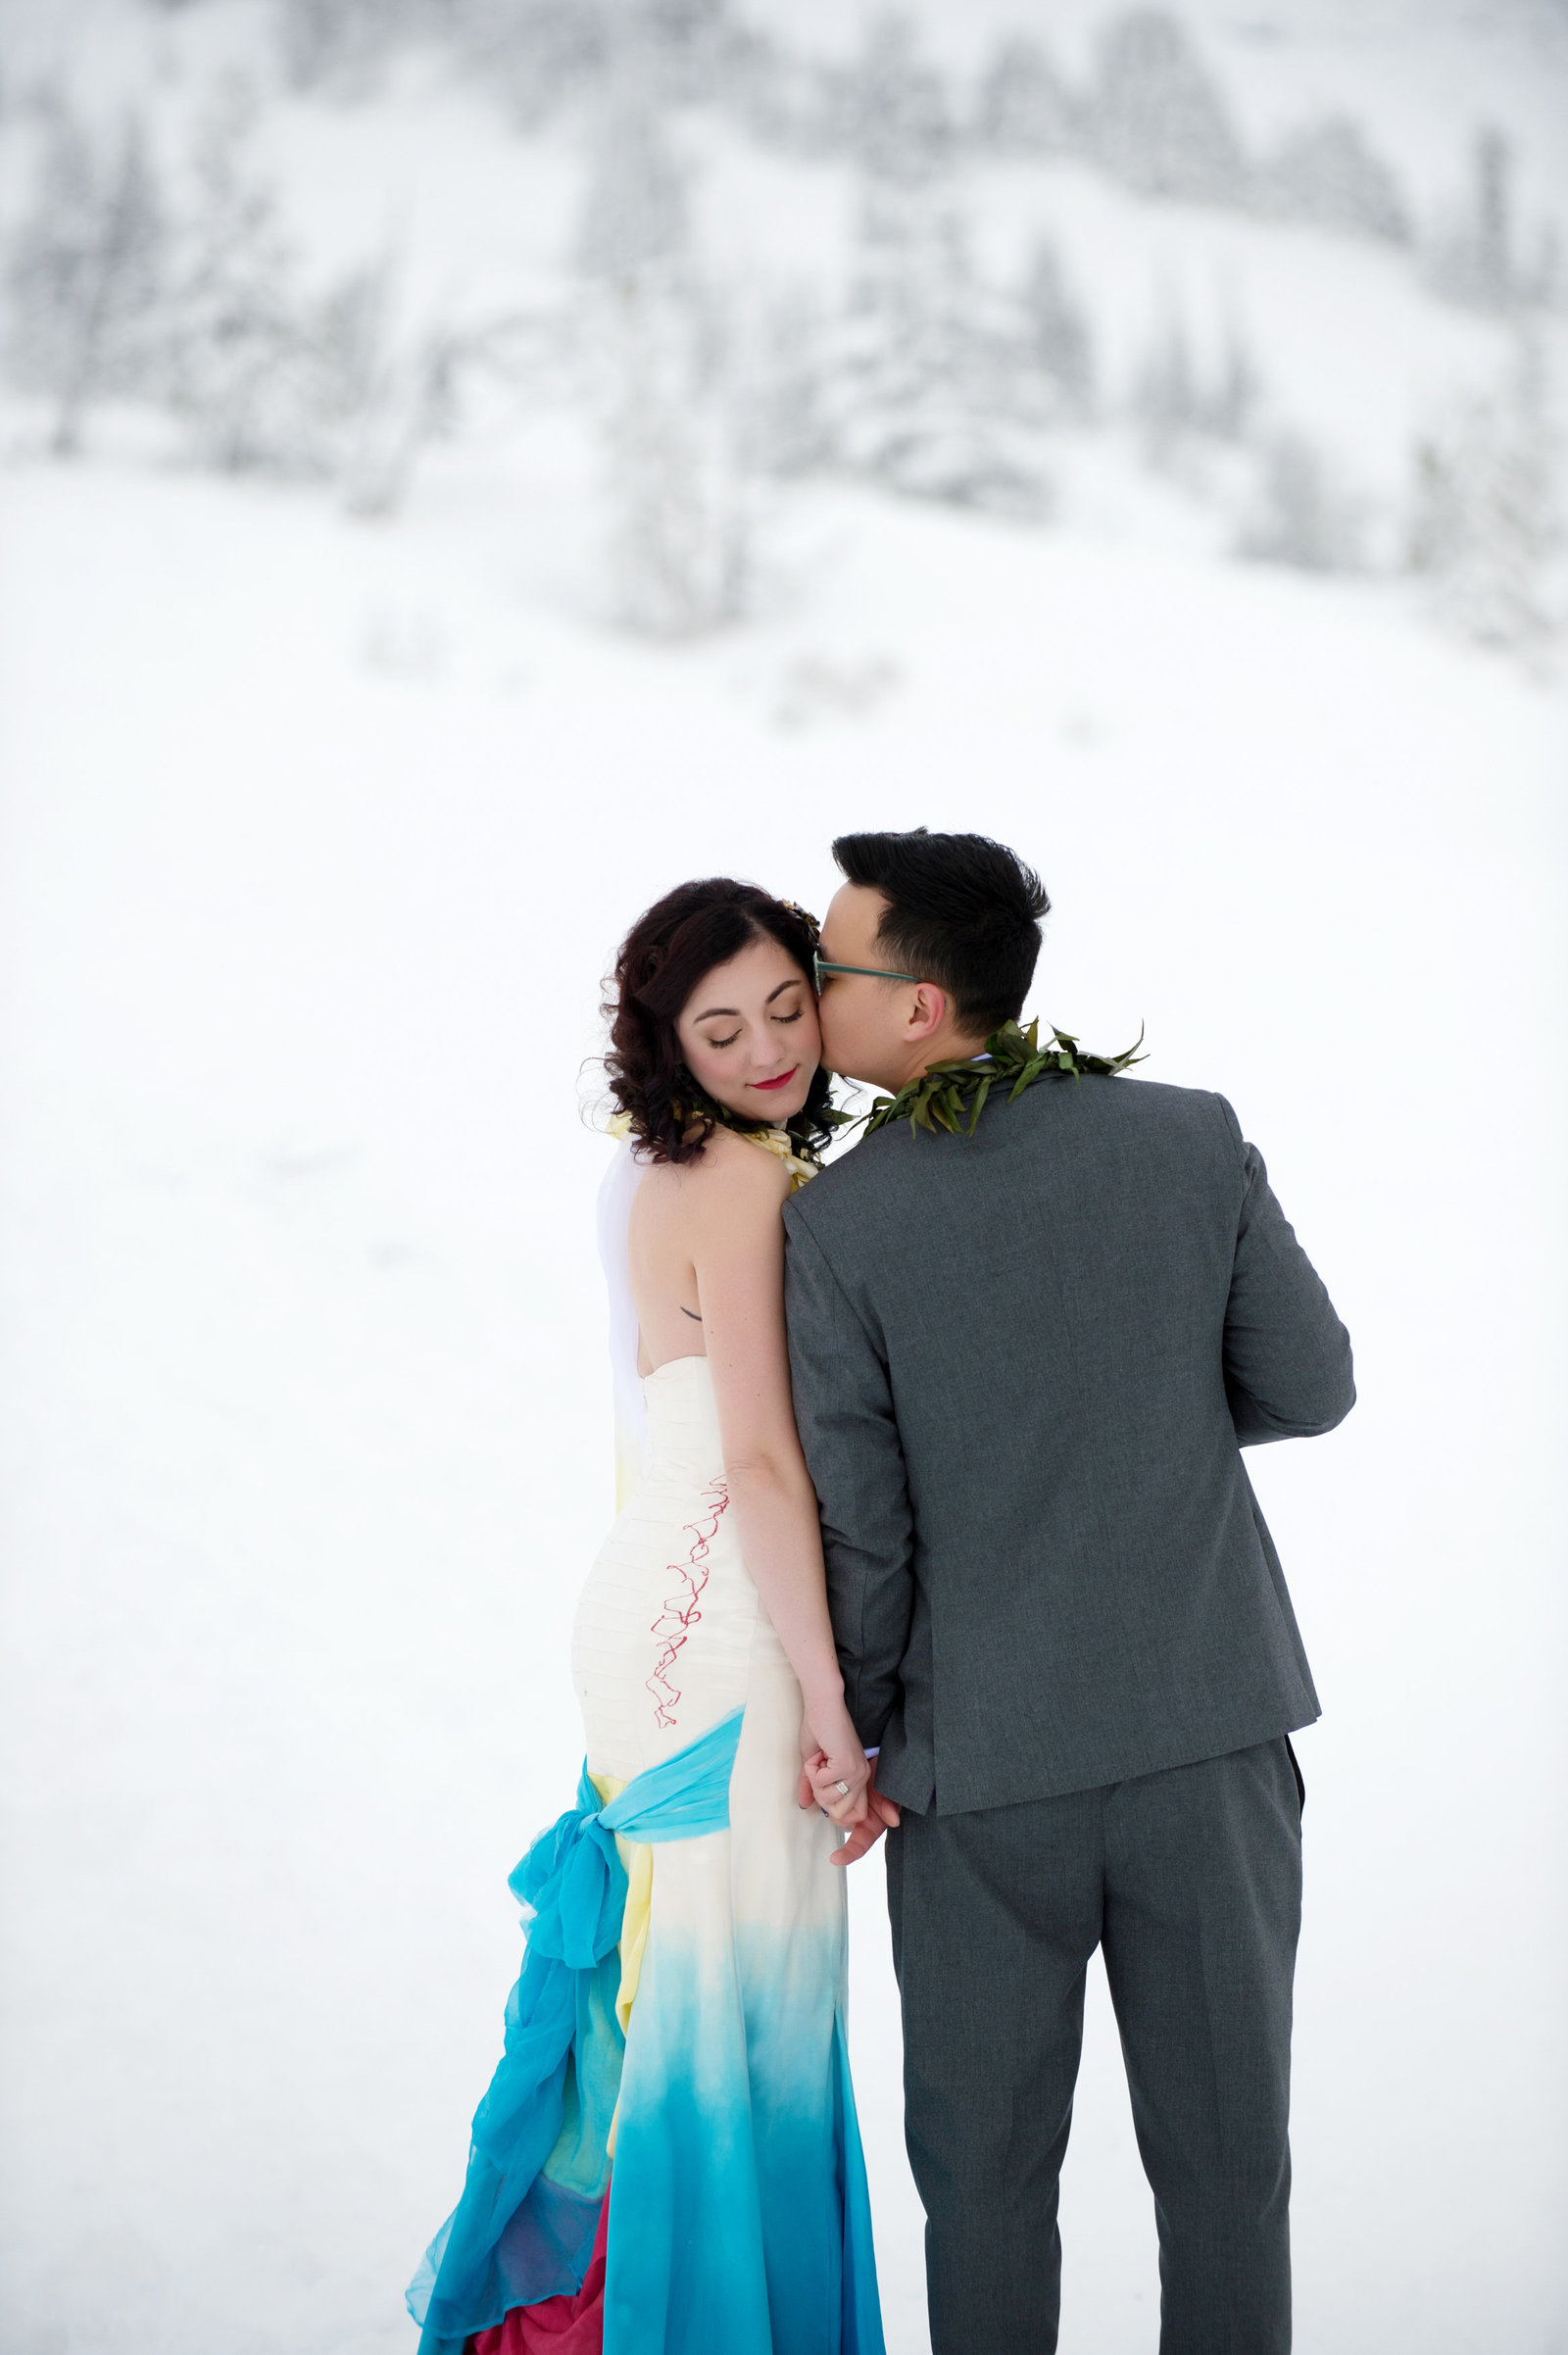 Crystal Genes Photography TIMBERLINE LODGE WEDDING161126-130452